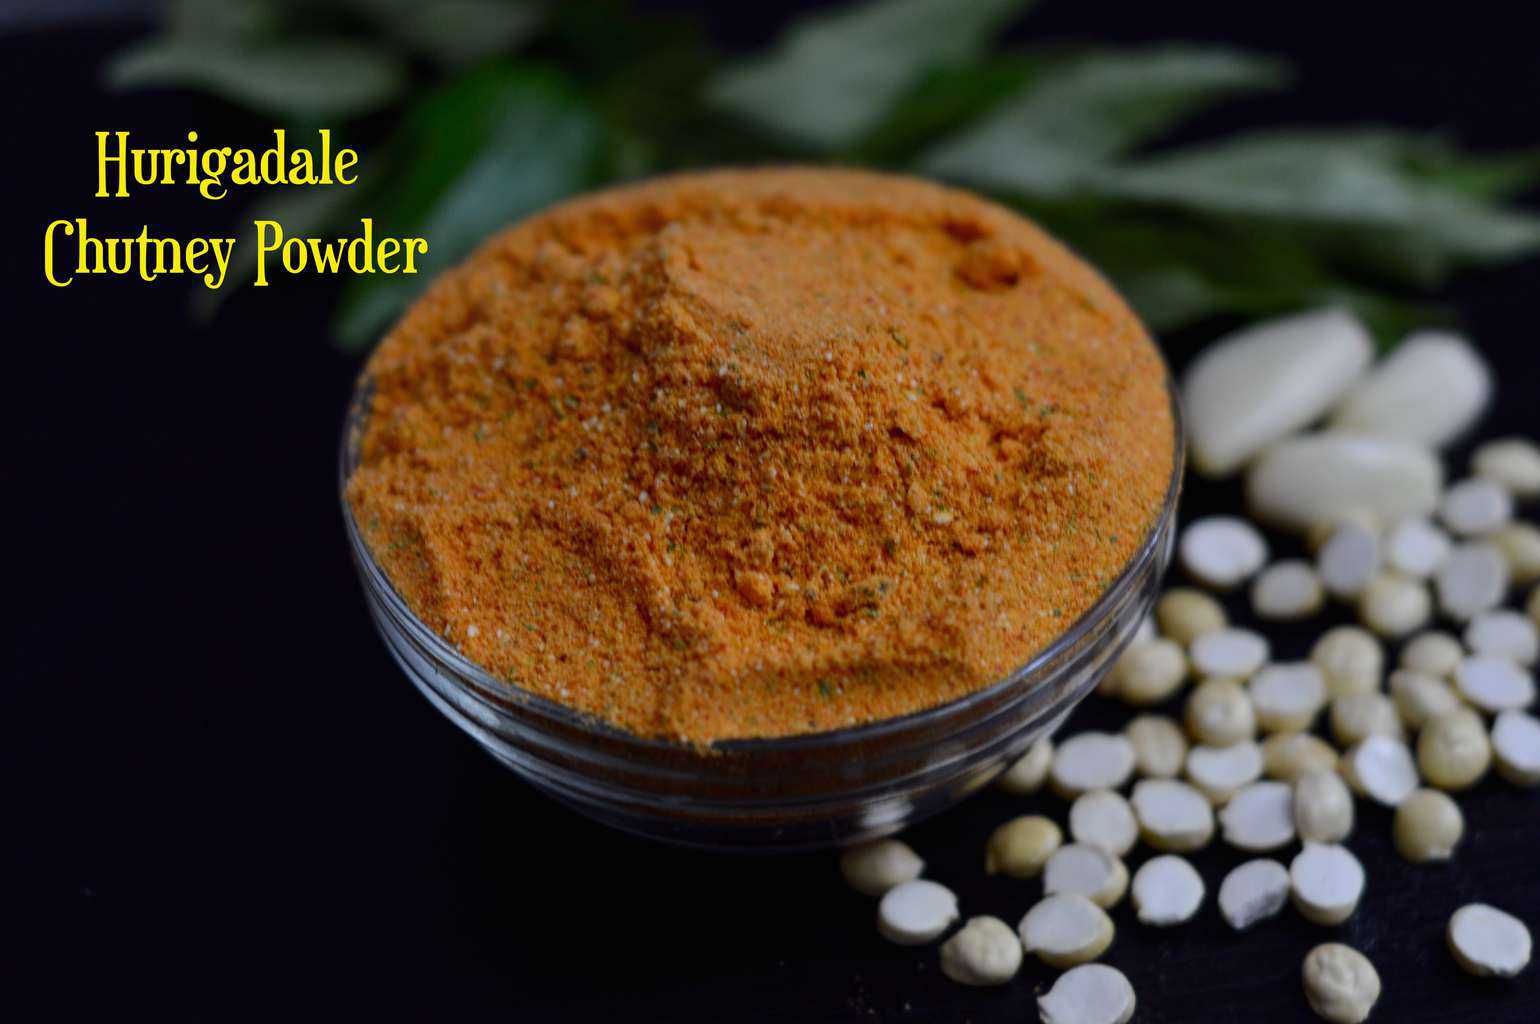 Hurigadale chutney pudi is very quick and easy breakfast side dish,Chutney powders are the basic must to have items in south indian kitchen. Each chutney powder has its unique flavor and taste! This hurigadale/fried gram chutney powder is very easy to make yet delicious chutney powder.